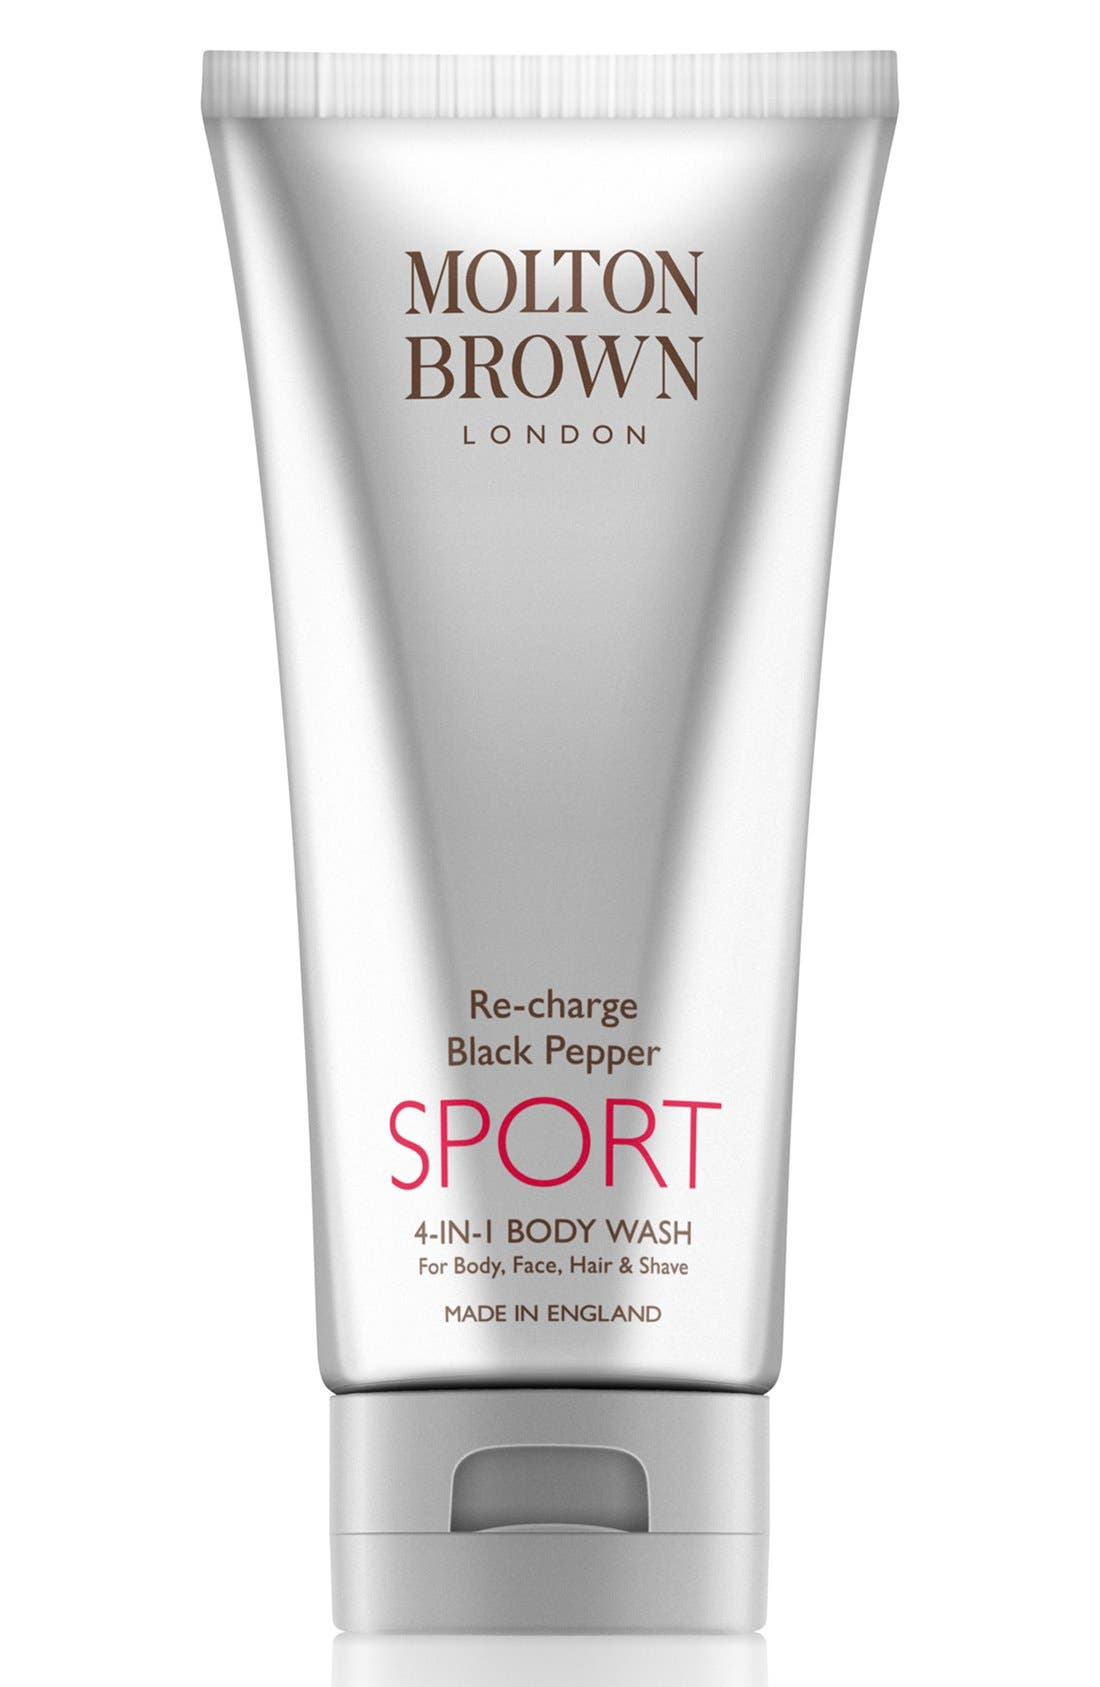 MOLTON BROWN London Re-charge Black Pepper Sport 4-in-1 Body Wash